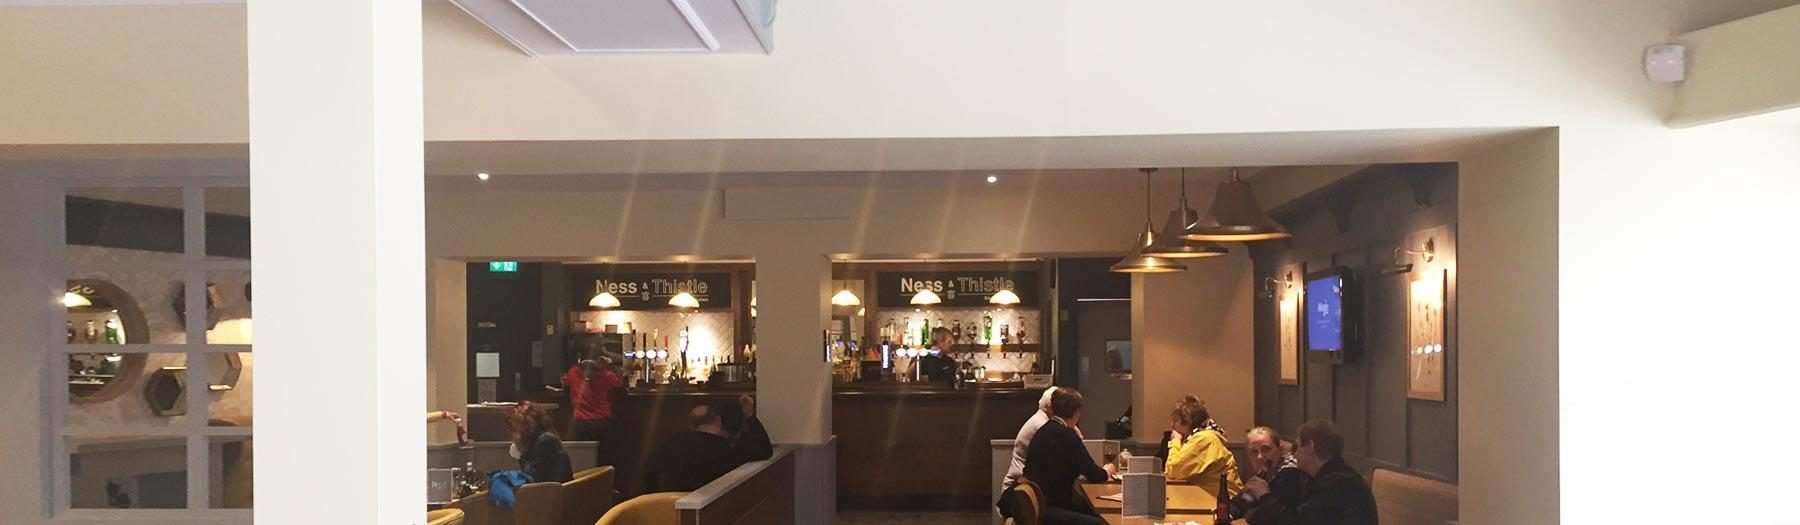 Ness & Thistle bar at Inverness station